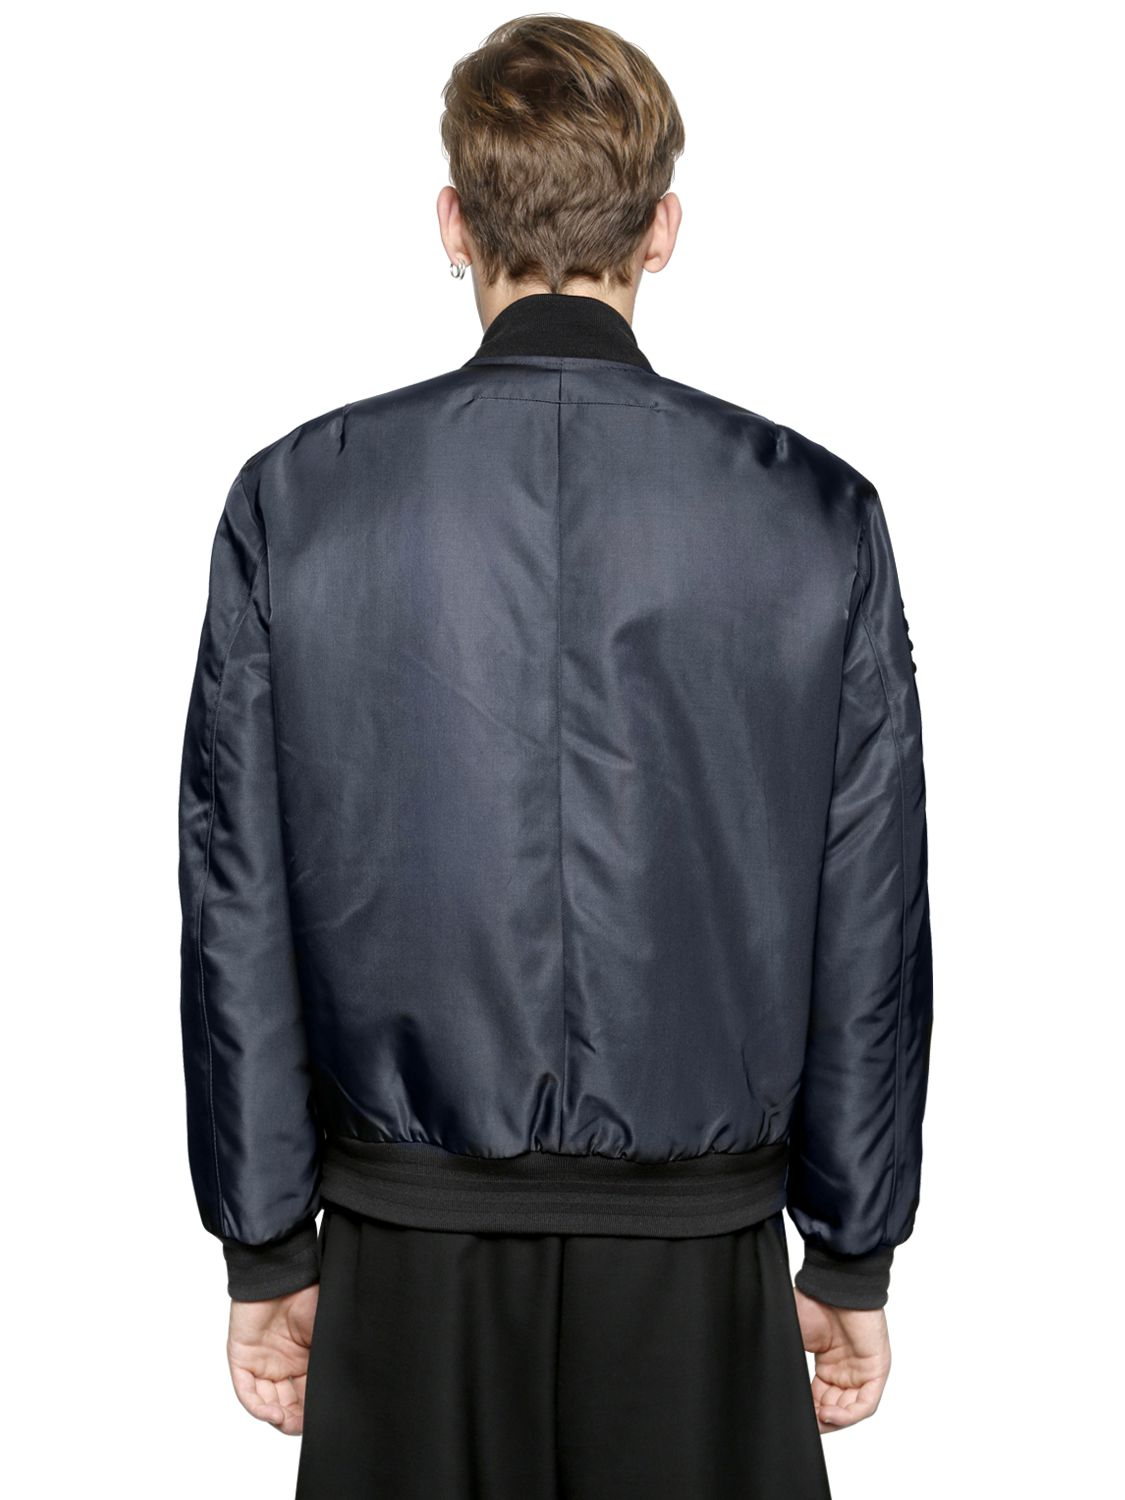 Leather jacket target - Gallery